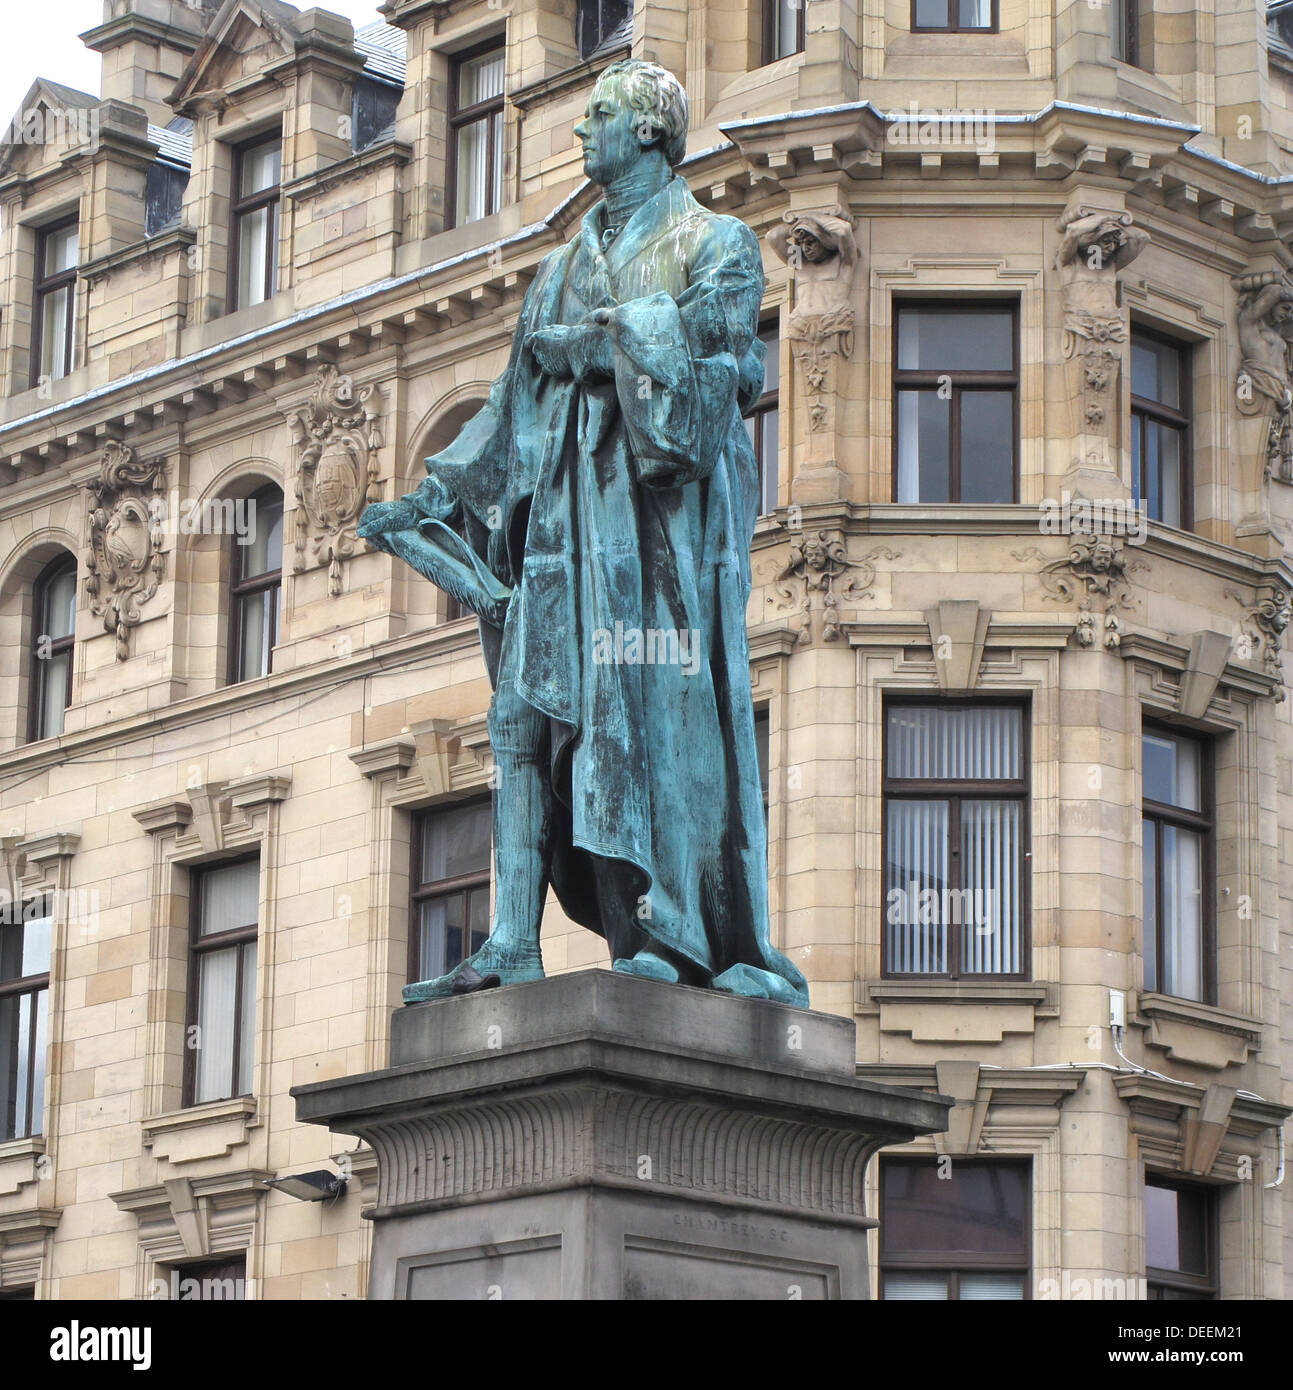 Statue of William Pitt the Younger (Britain's Youngest Prime Minister), George Street, New Town, Edinburgh, Scotland, UK - Stock Image